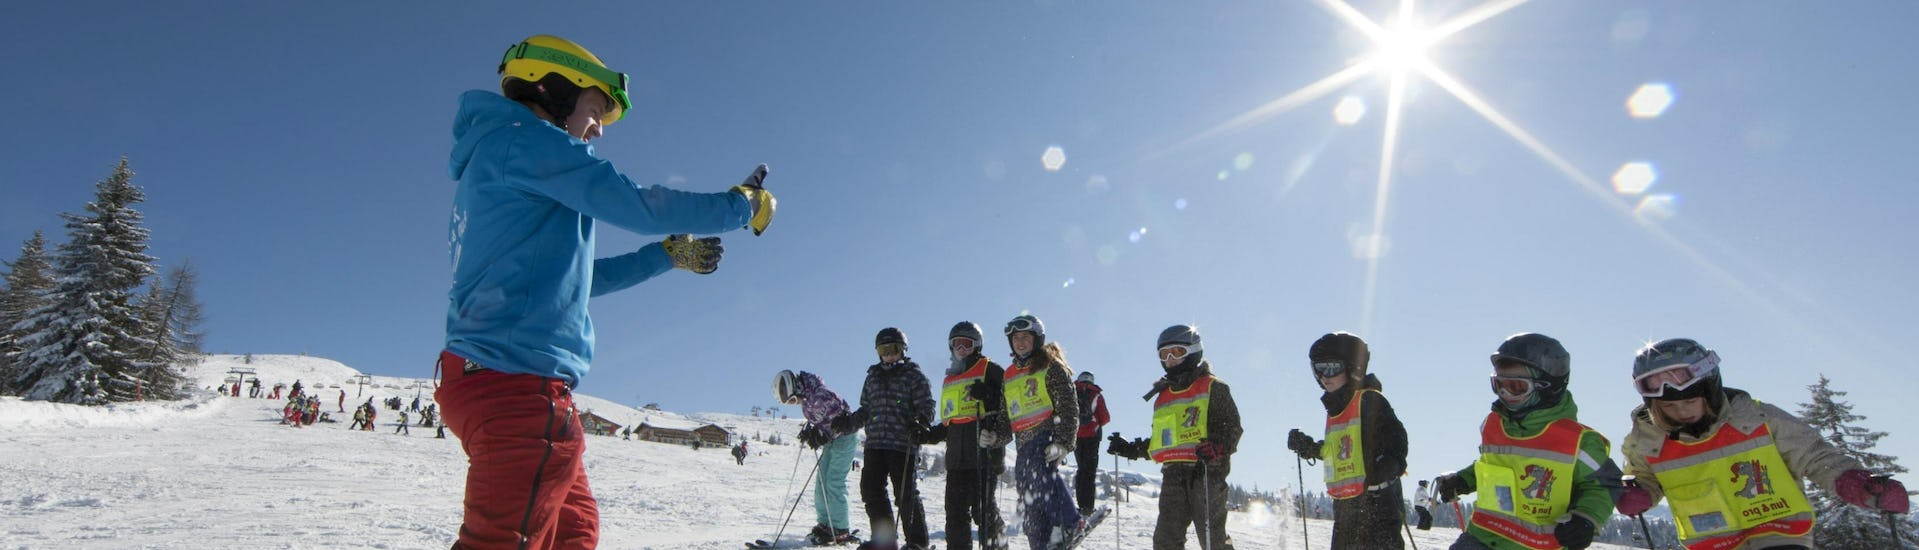 A ski instructor is holding one of the many group ski lessons in the ski resort of Notre-Dame-de-Bellecombe.